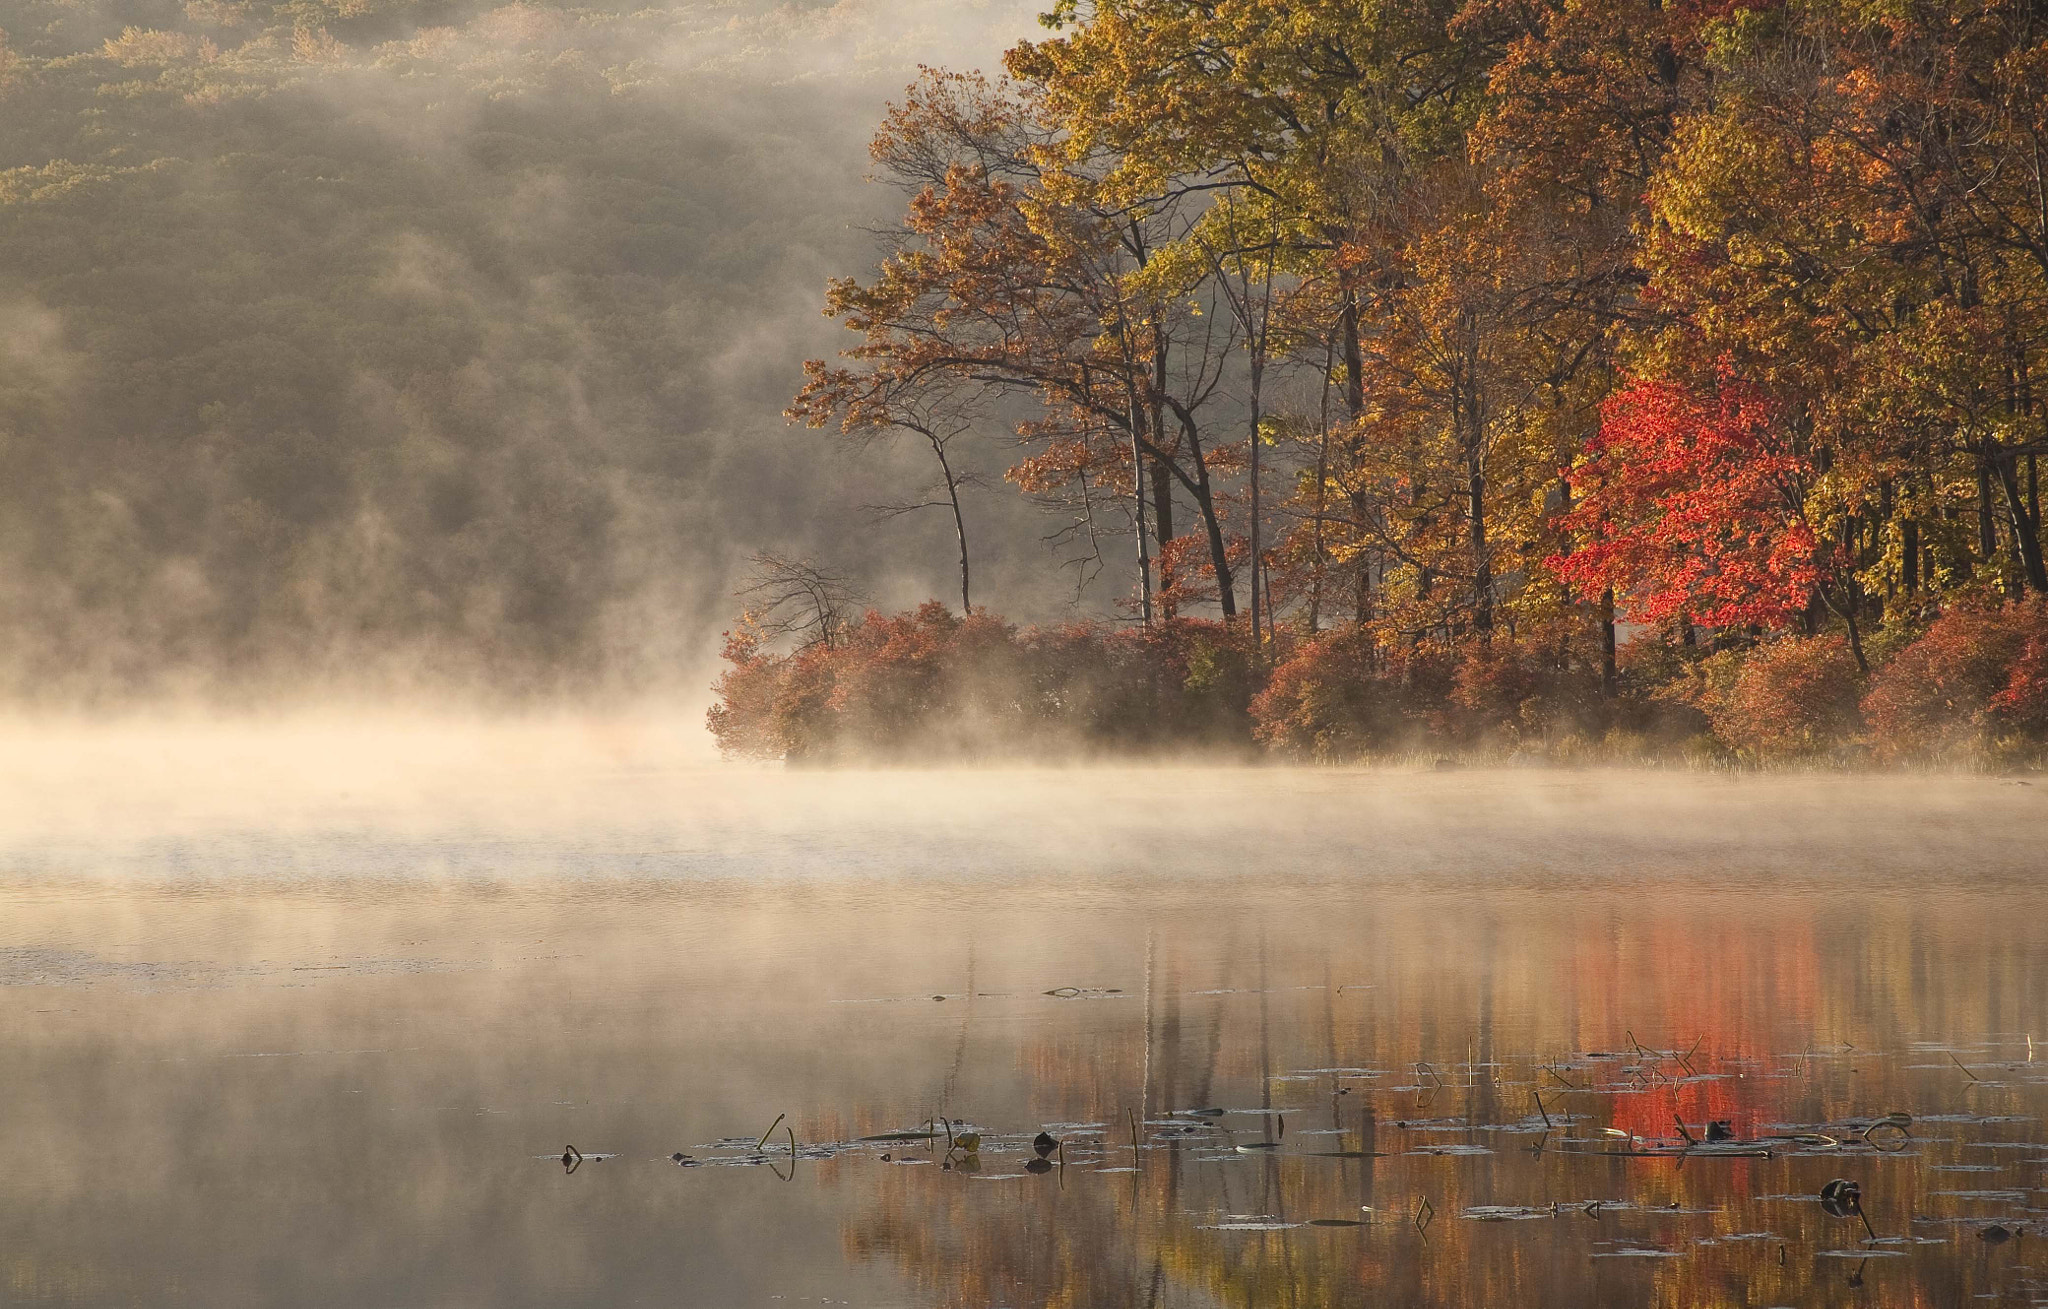 Photograph Golden Morning, Hudson Valley, NY, 2008 by Christopher Wisker on 500px